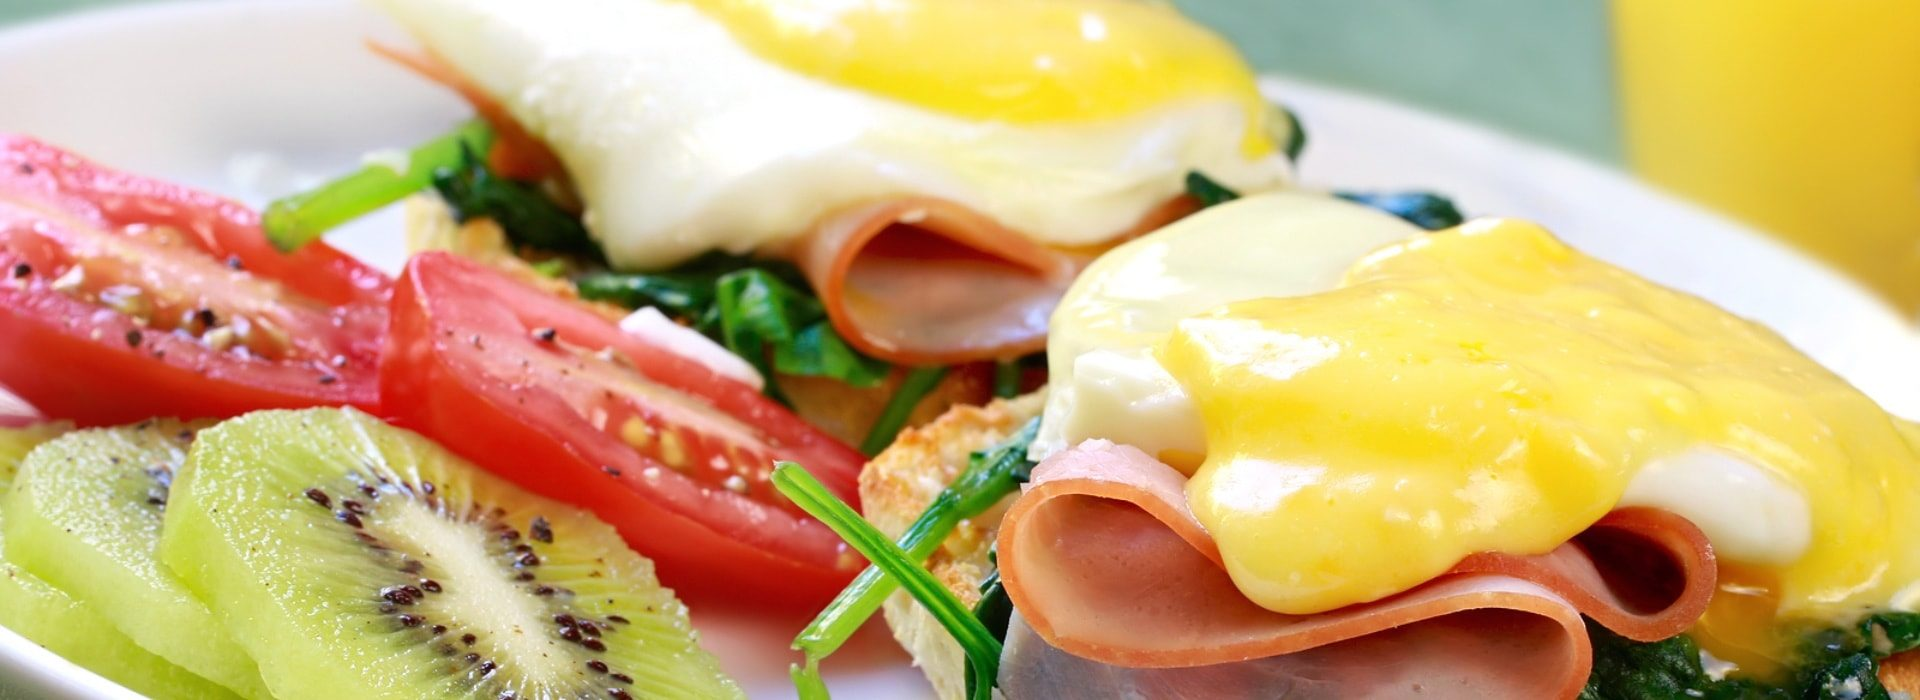 Close up view of eggs benedict with sliced tomatoes and kiwi